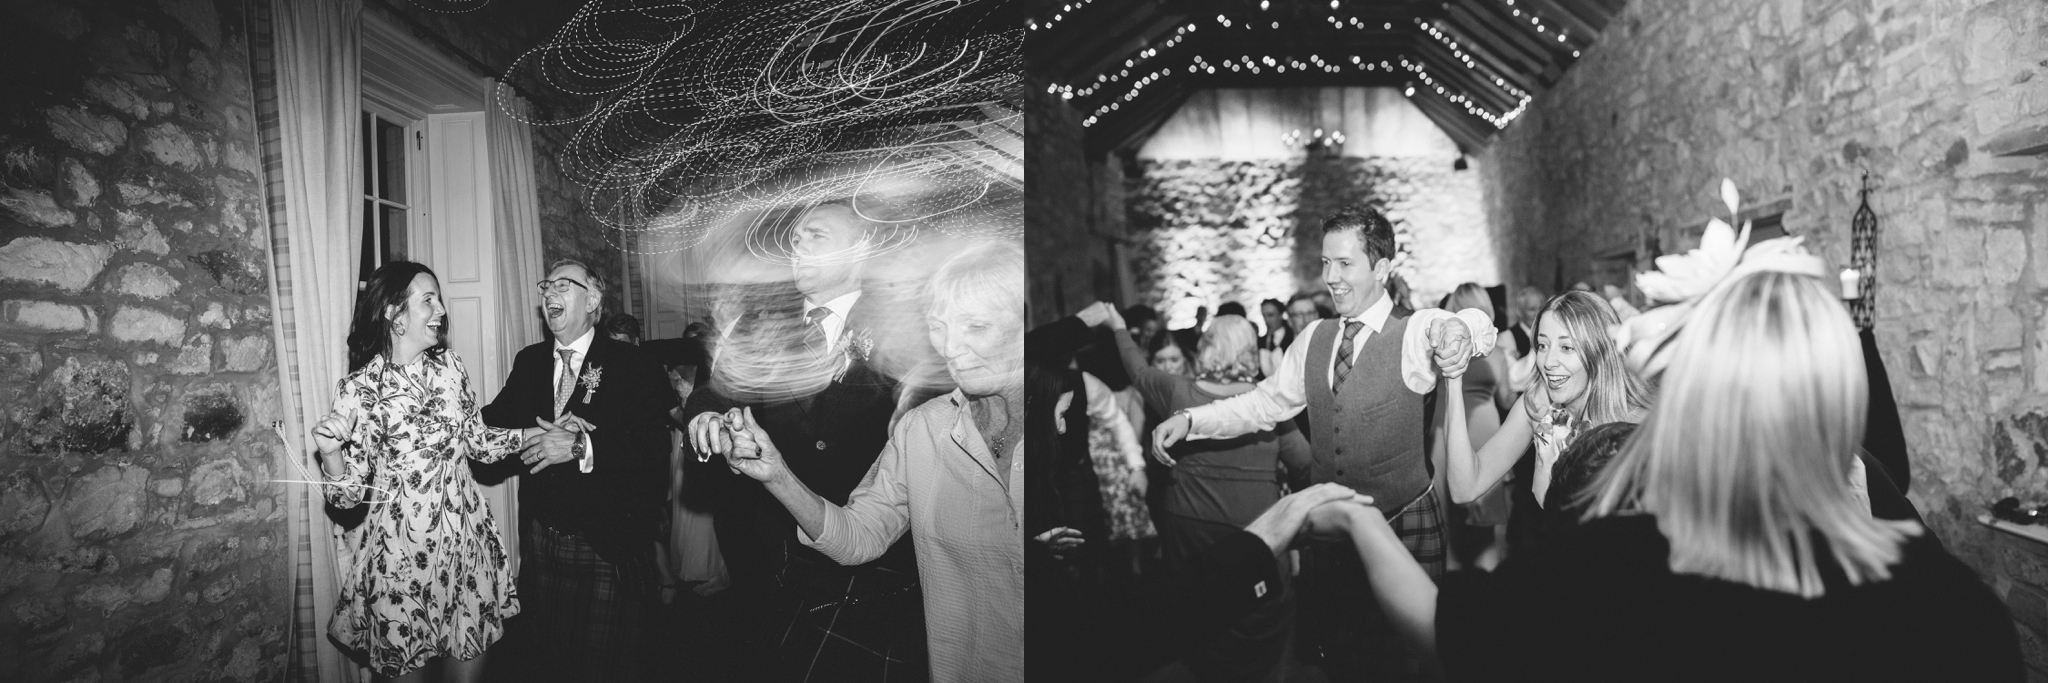 Suzanne_li_photography_kirknewton_wedding_0073.jpg